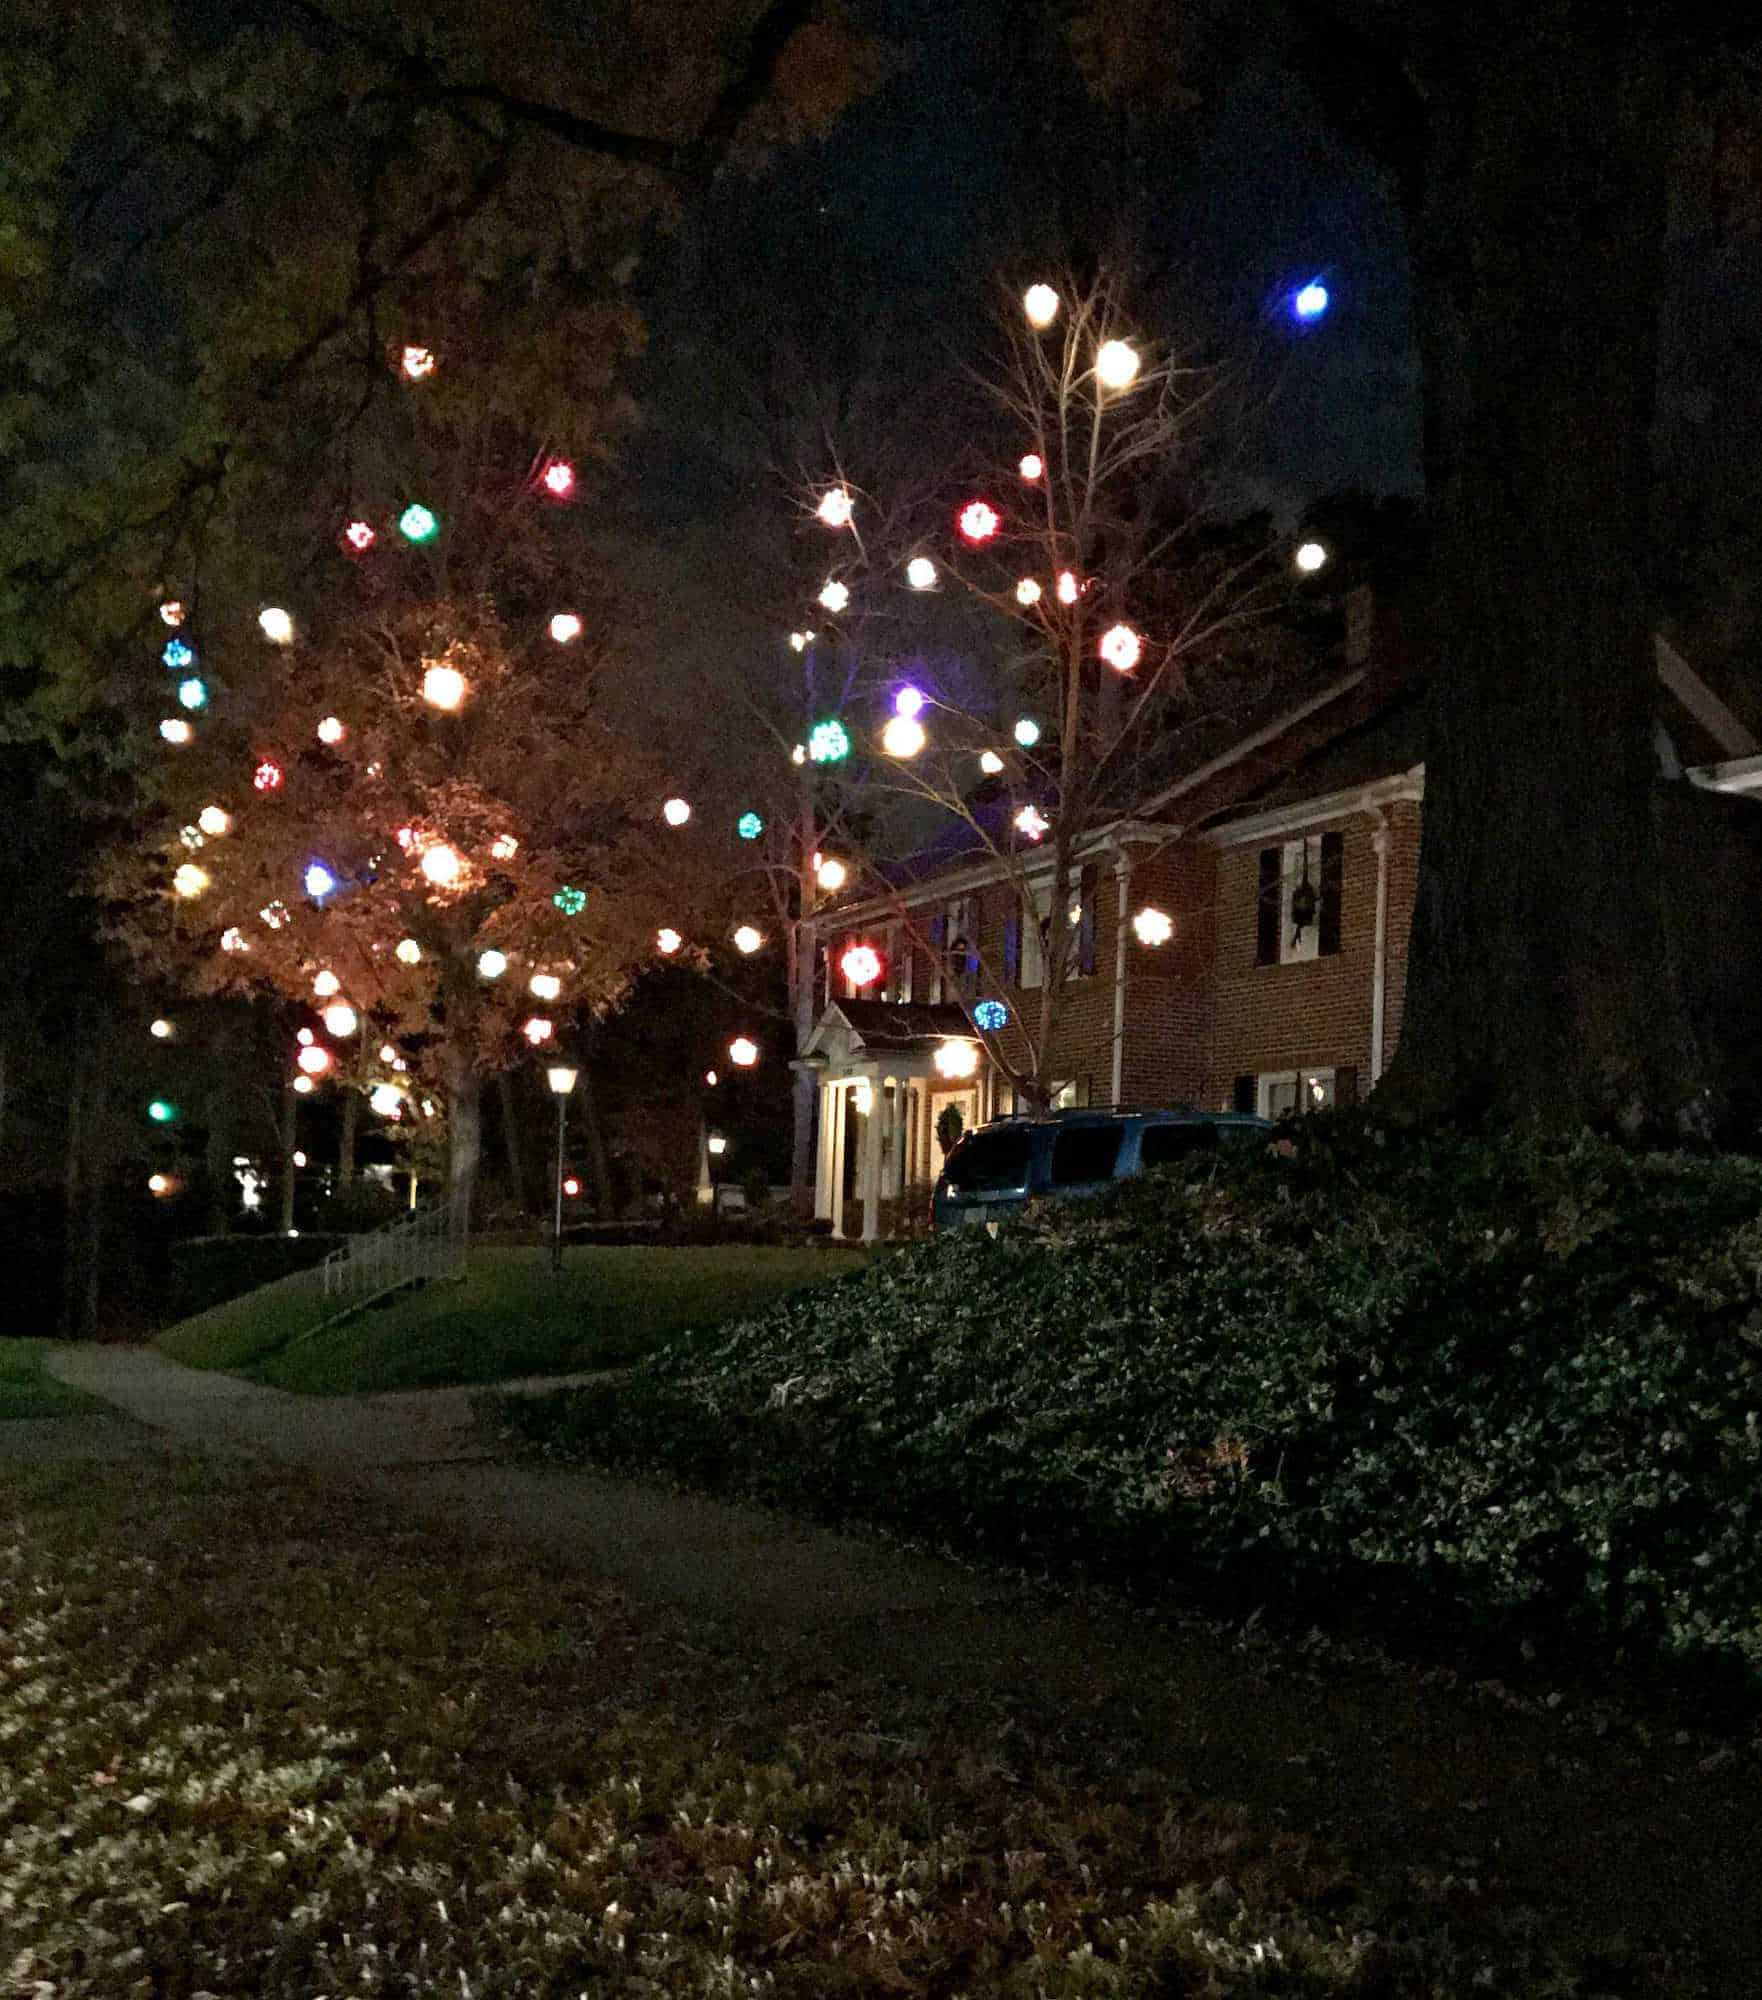 dozens of DIY lighted Christmas balls hanging in trees